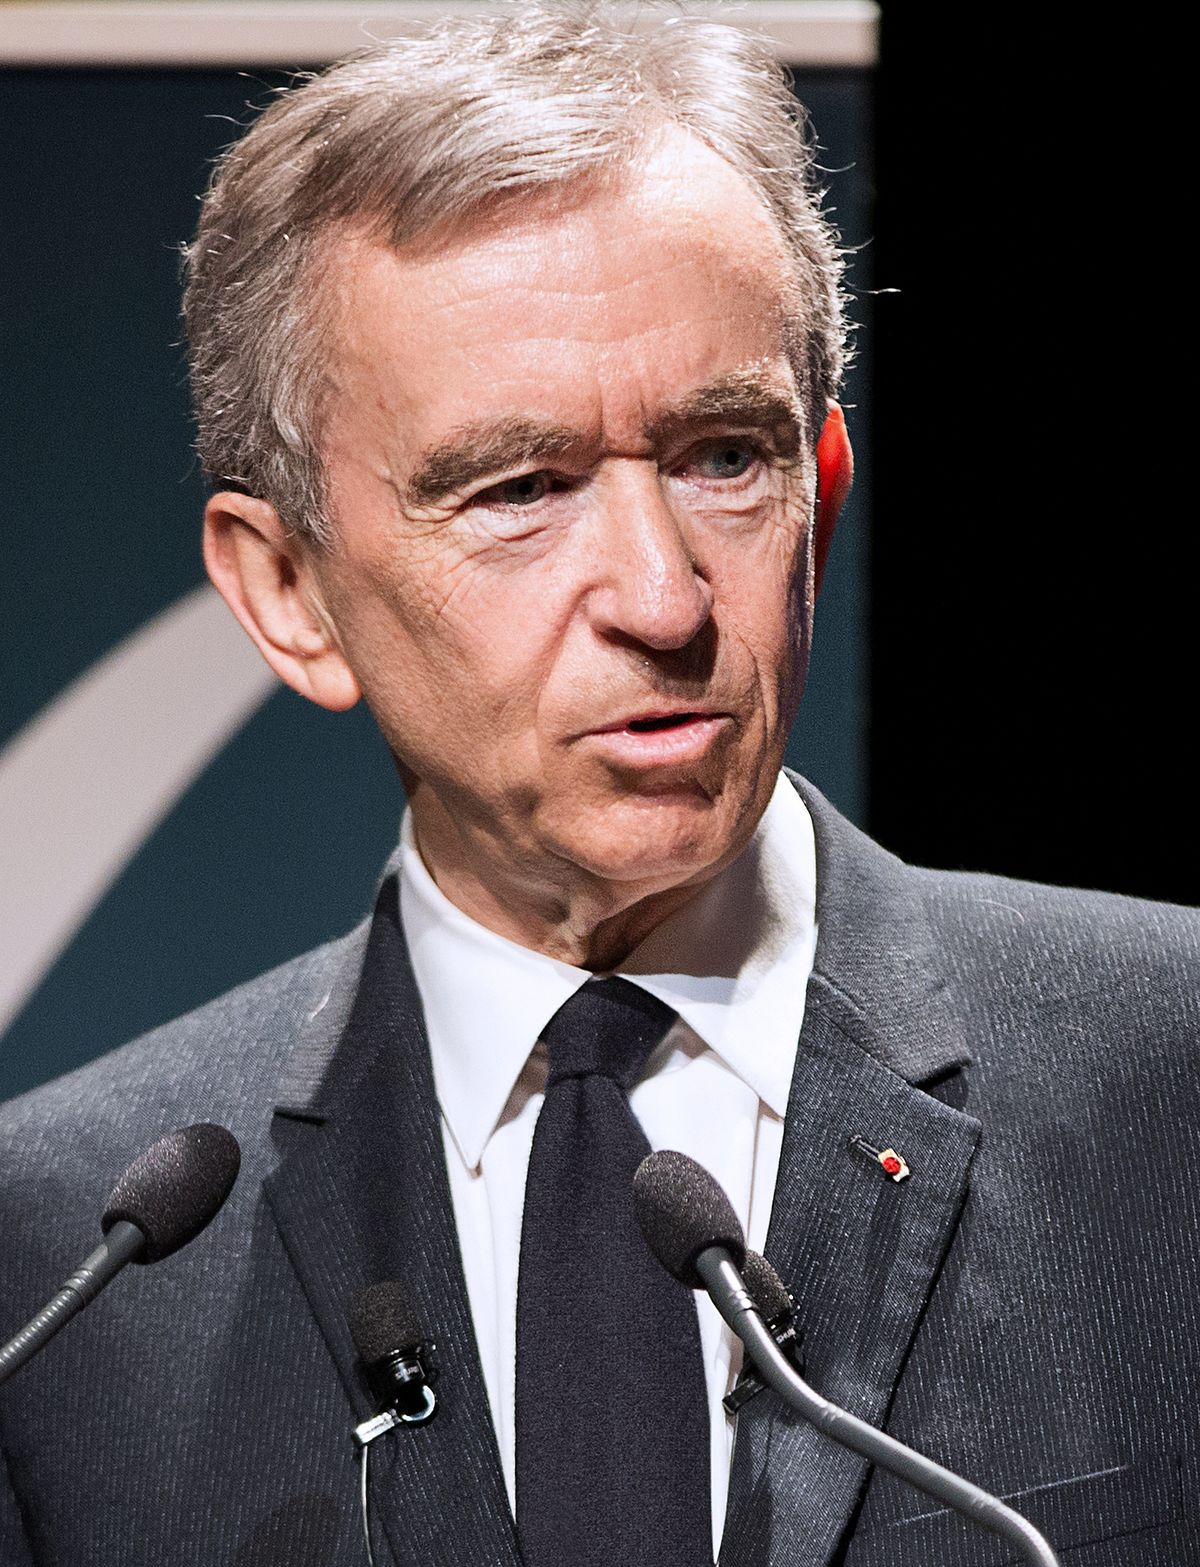 Image result for Bernard Arnault